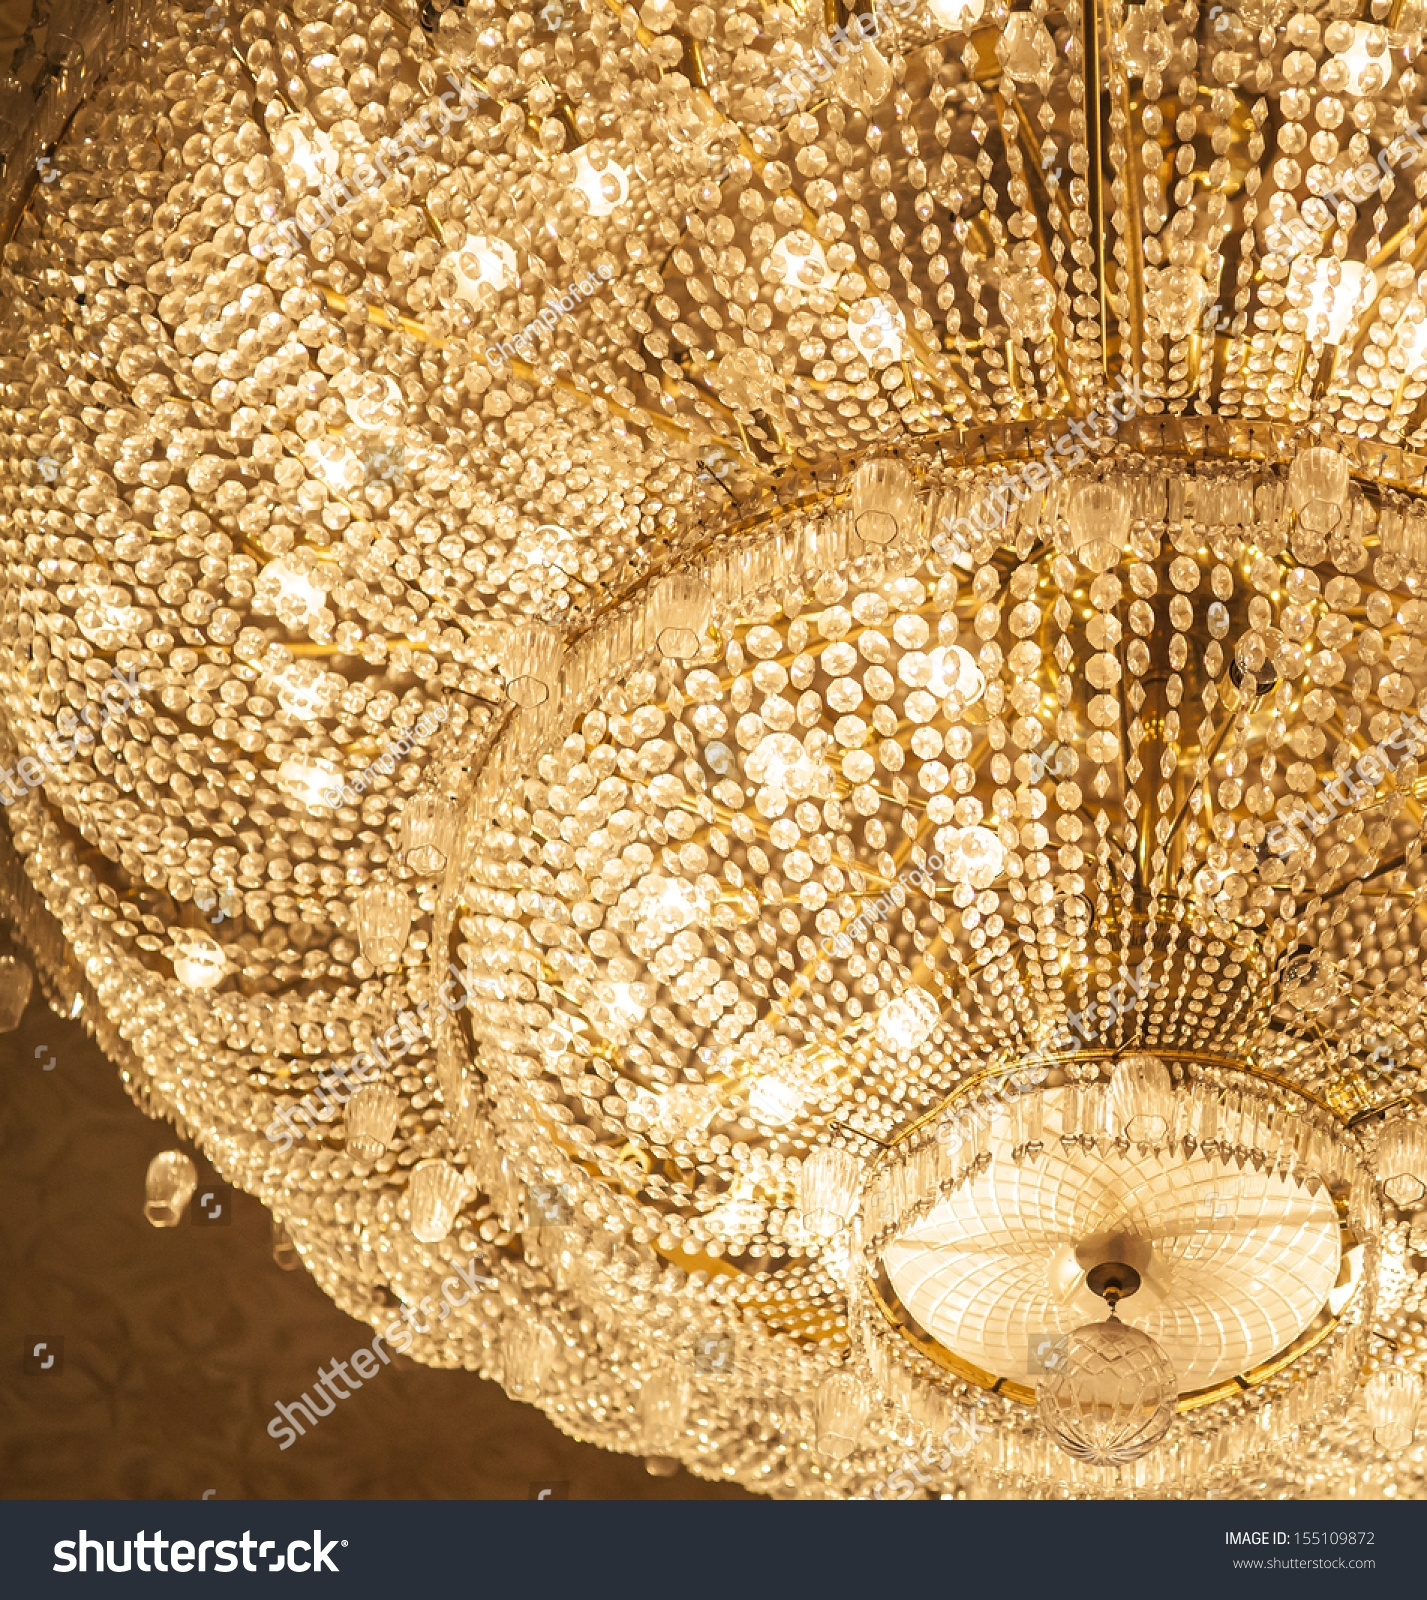 Big Crystal Chandelier Stock Photo 155109872 Shutterstock Inside Big Crystal Chandelier (Image 5 of 15)